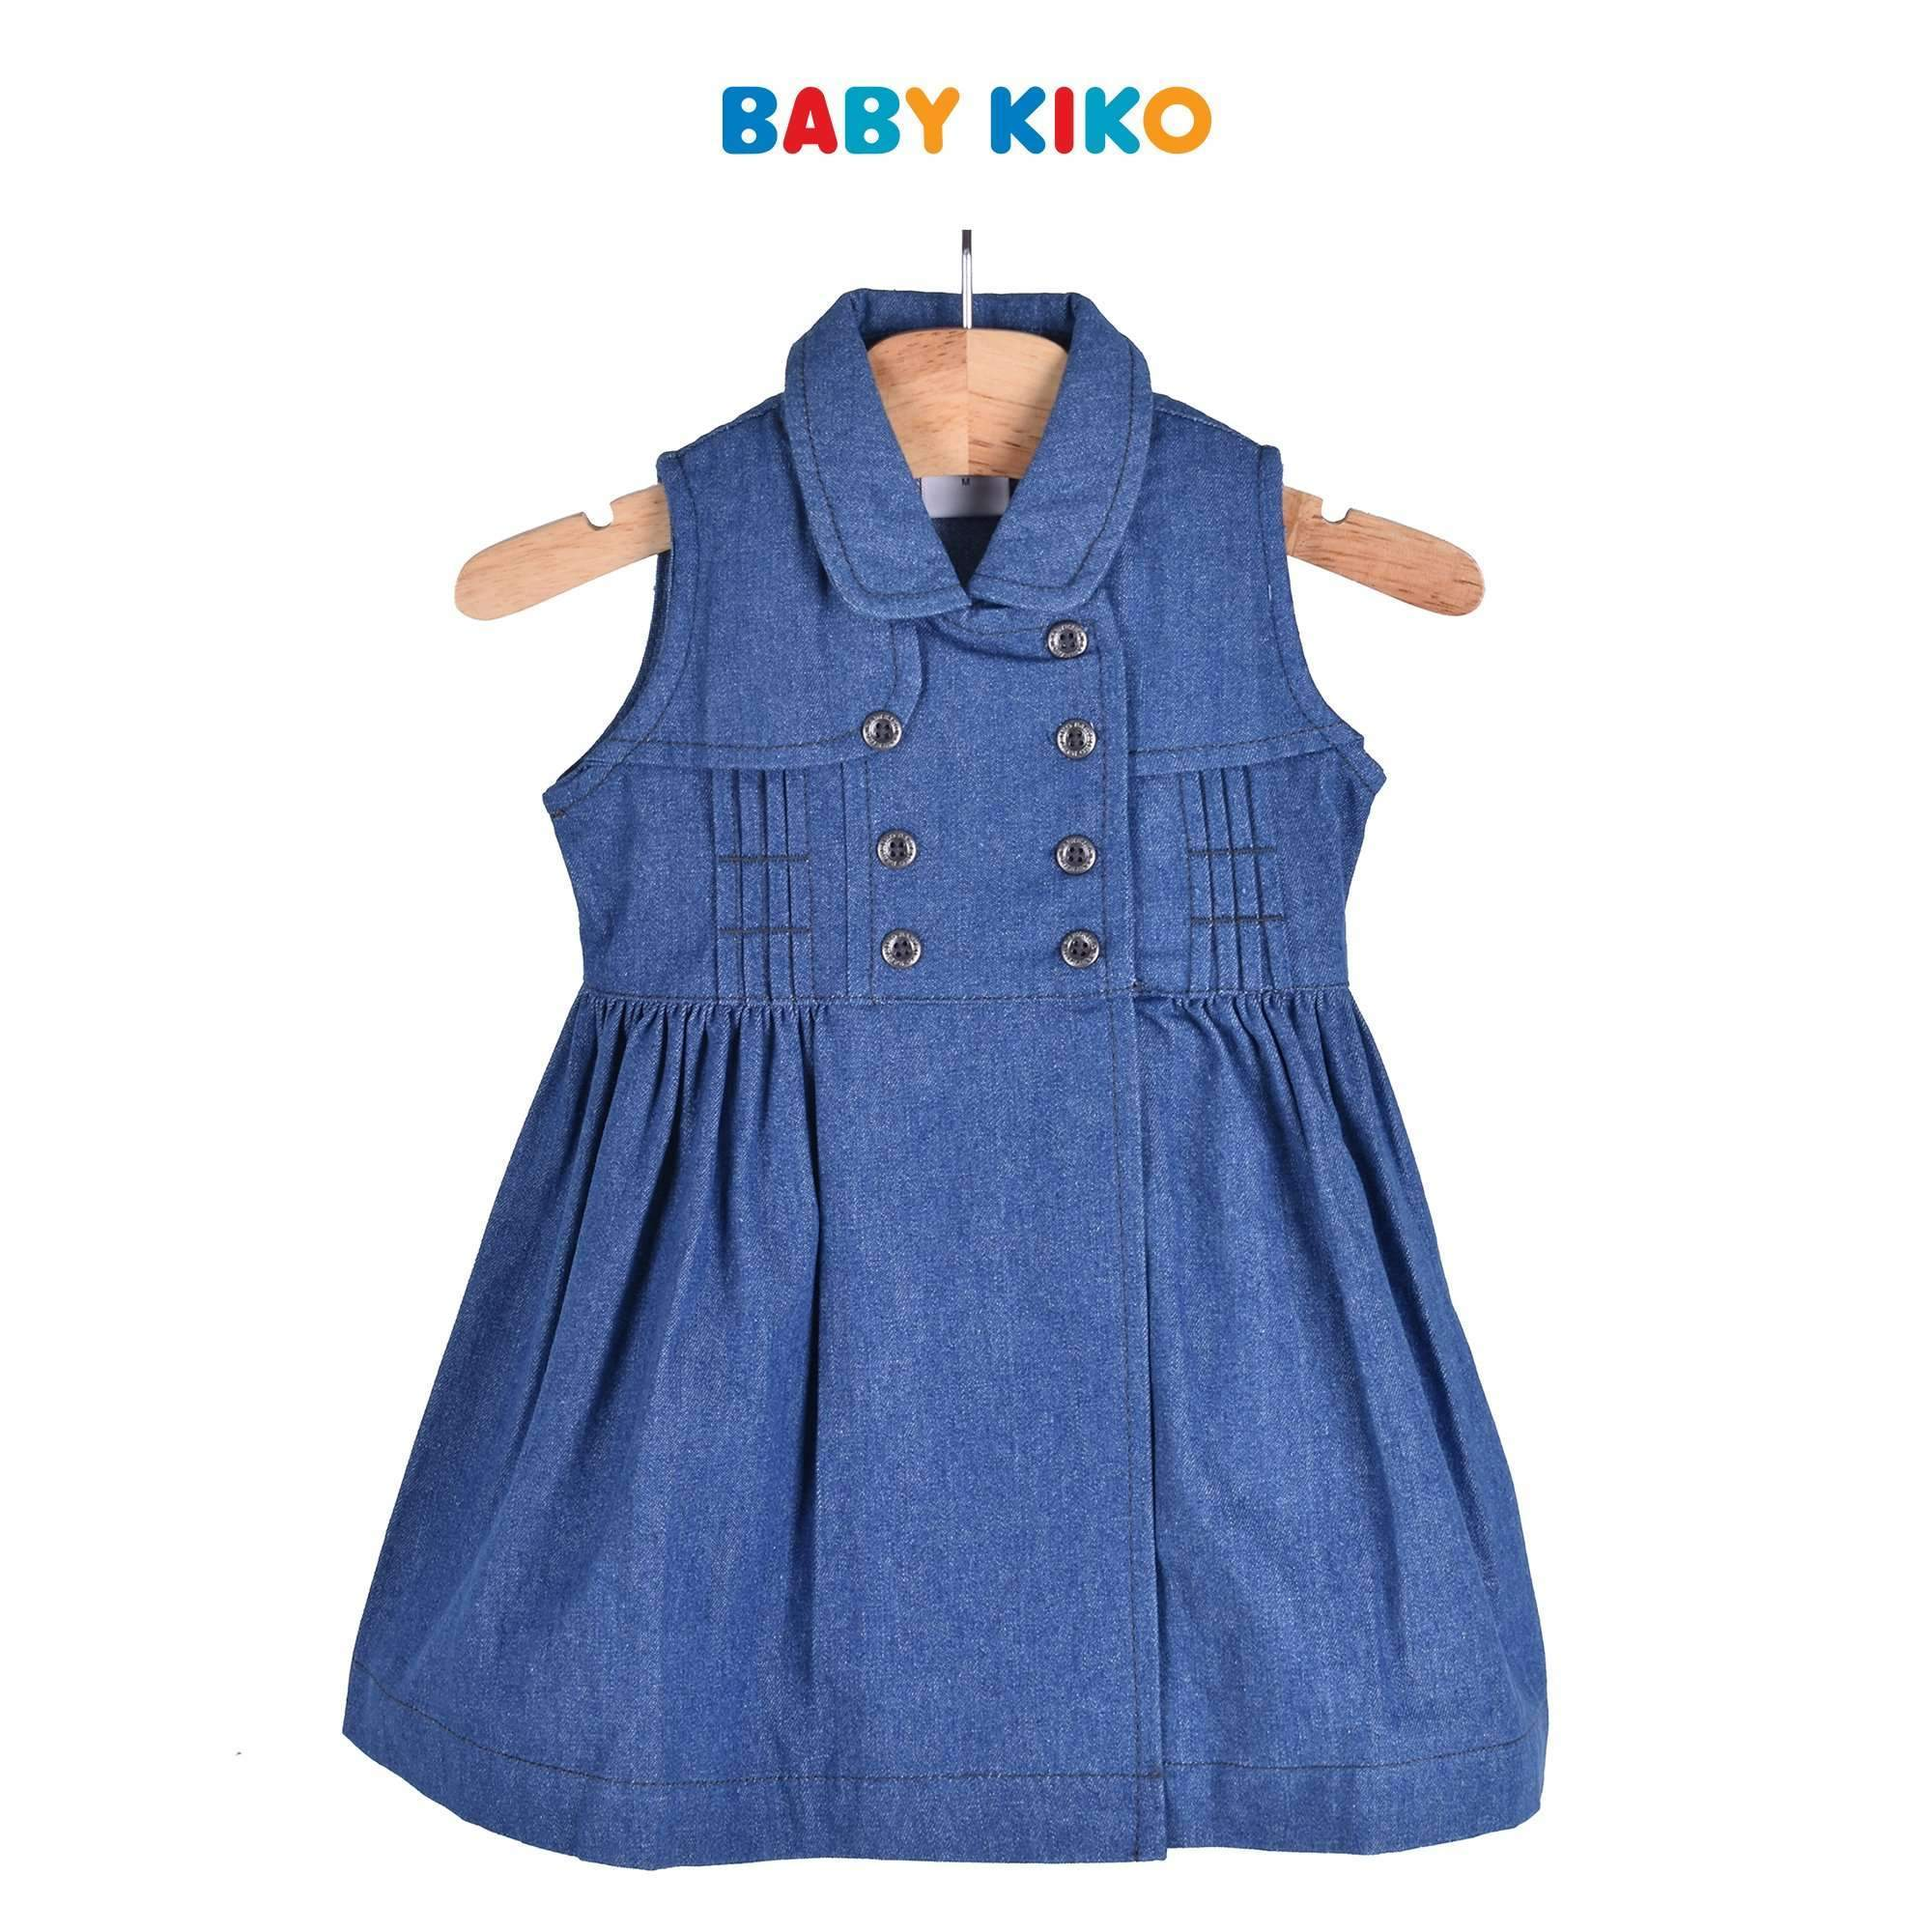 Baby KIKO Toddler Girl Sleeveless Dress Denim 301 Kids Baby